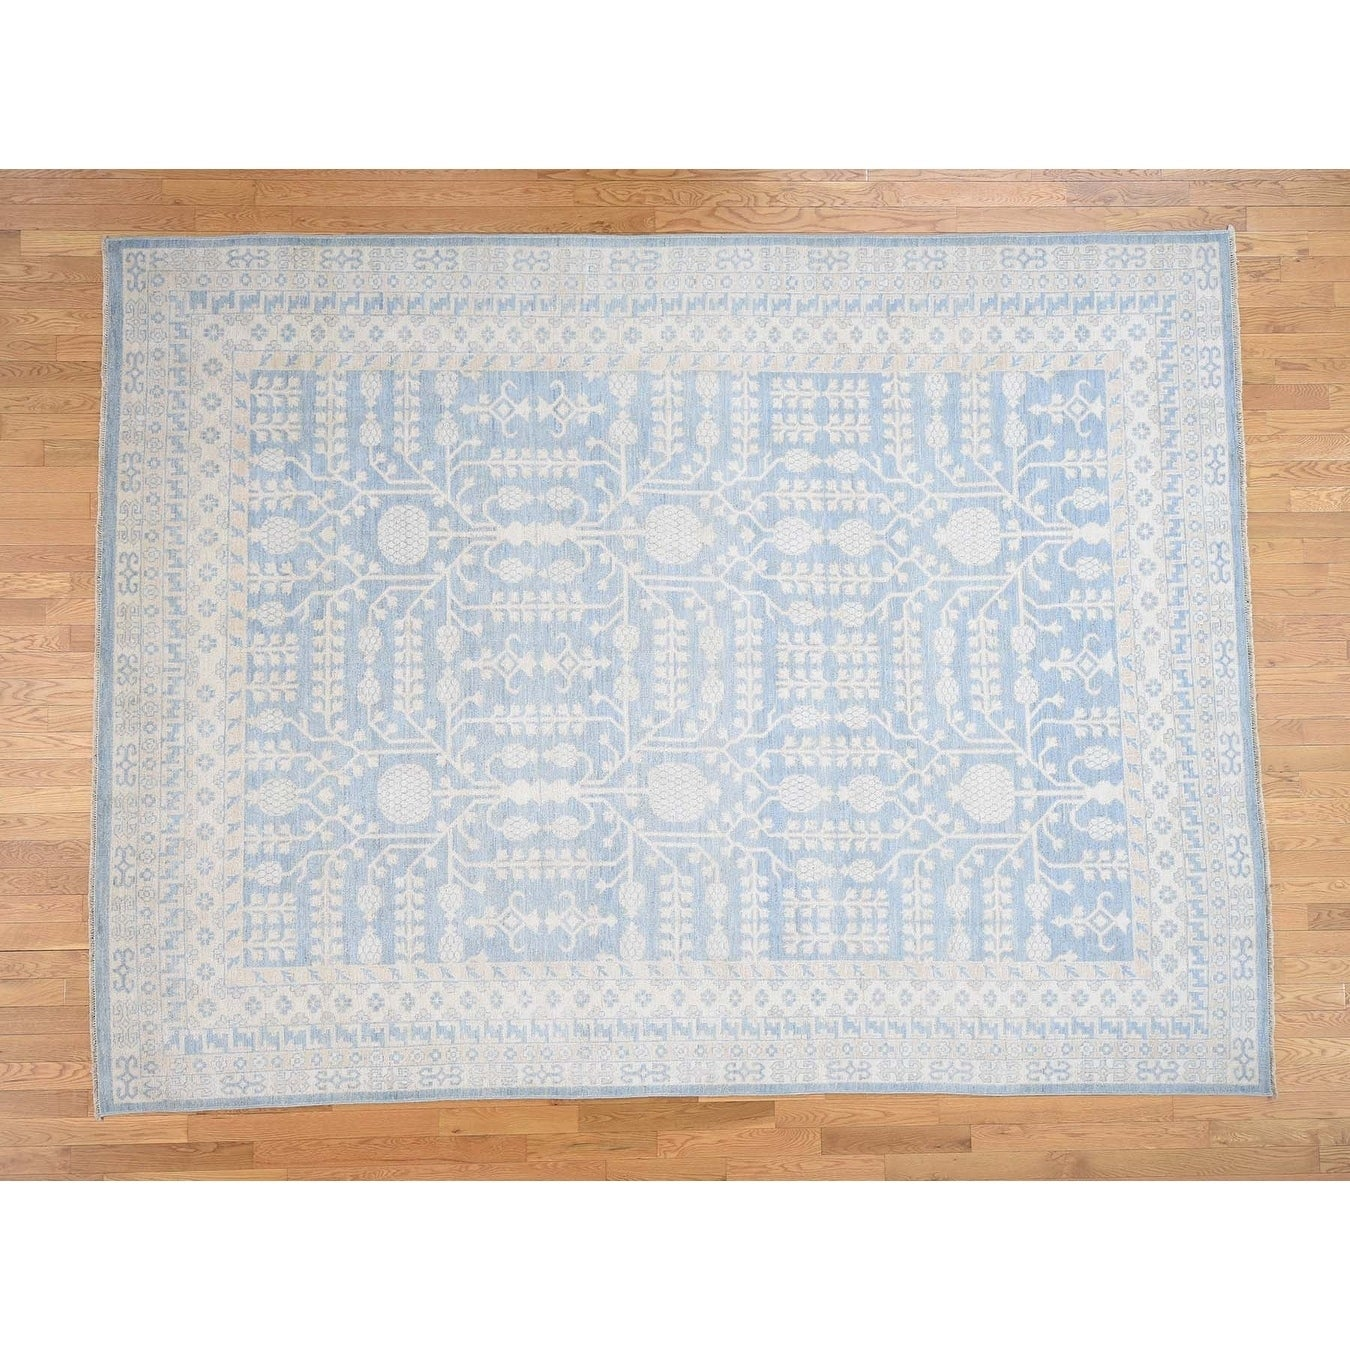 Hand Knotted Blue Khotan and Samarkand with Wool Oriental Rug